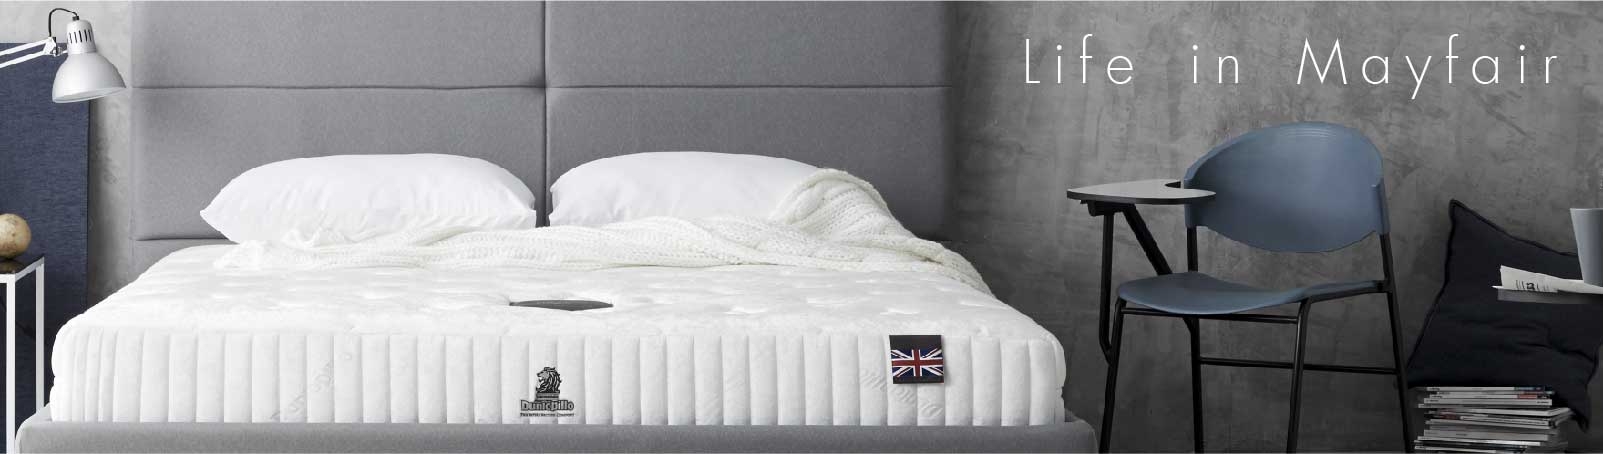 Dunlopillo Mattress - Swindon